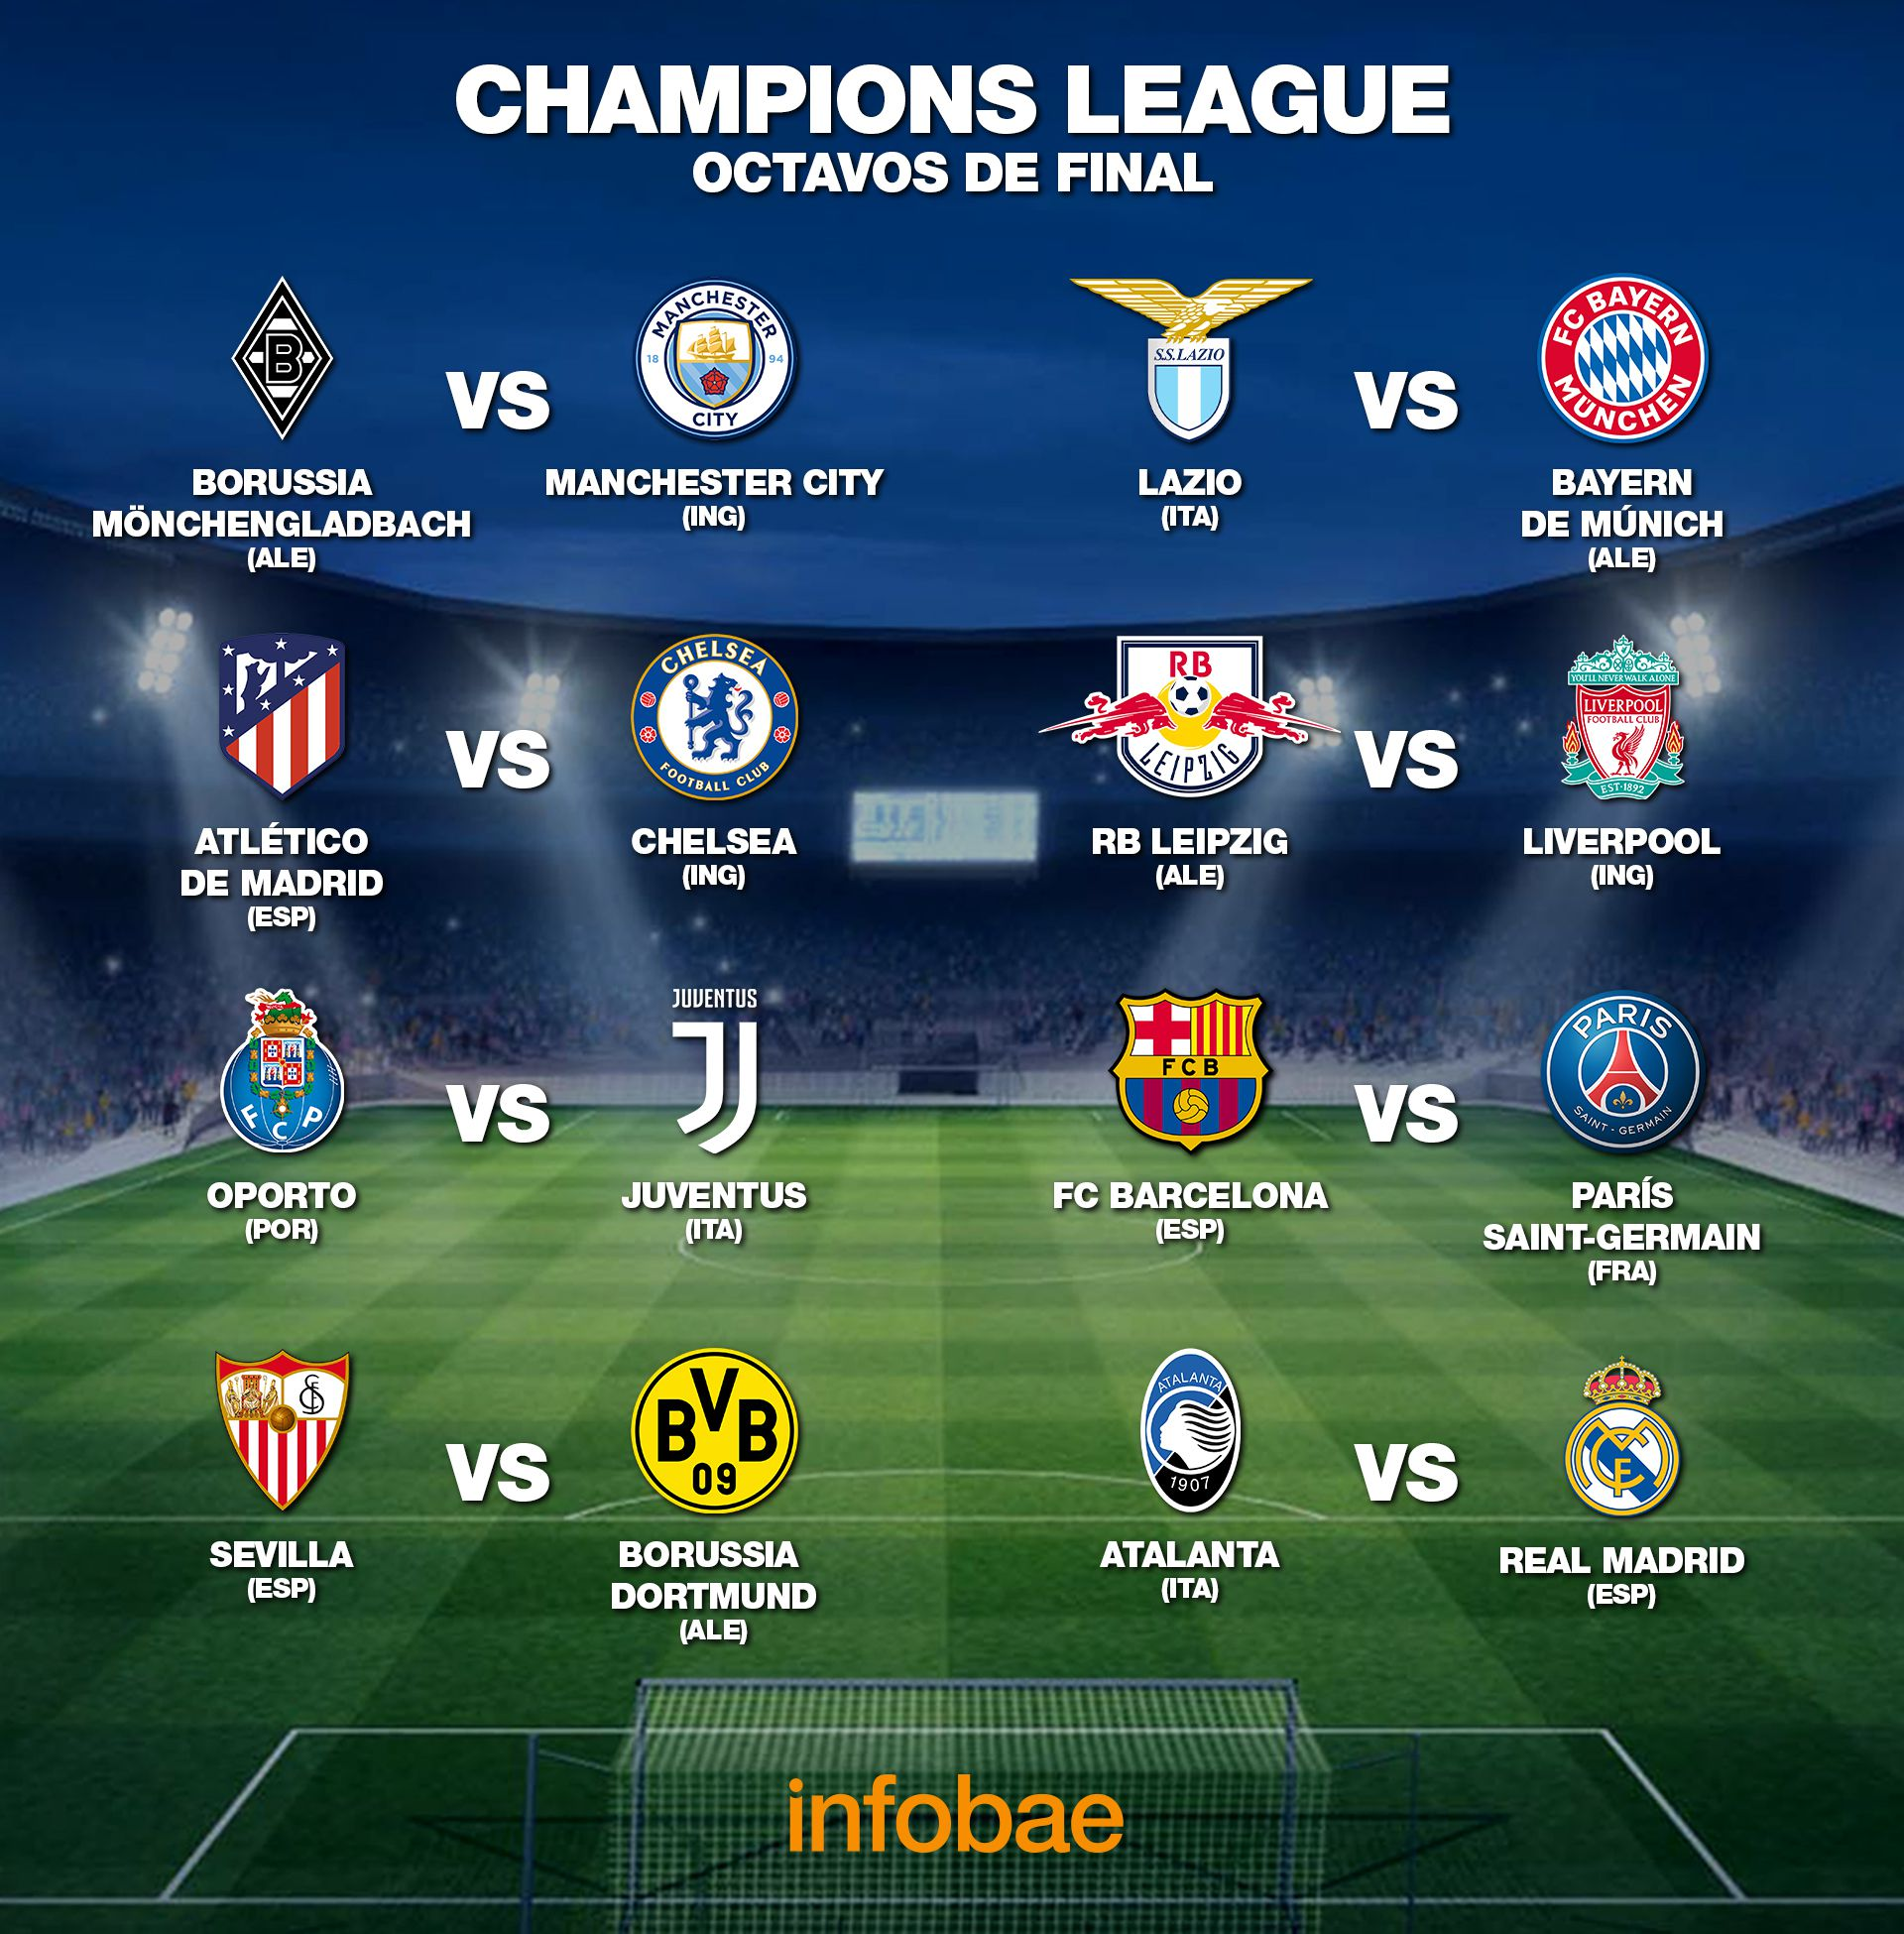 Champions League - Octavos de final